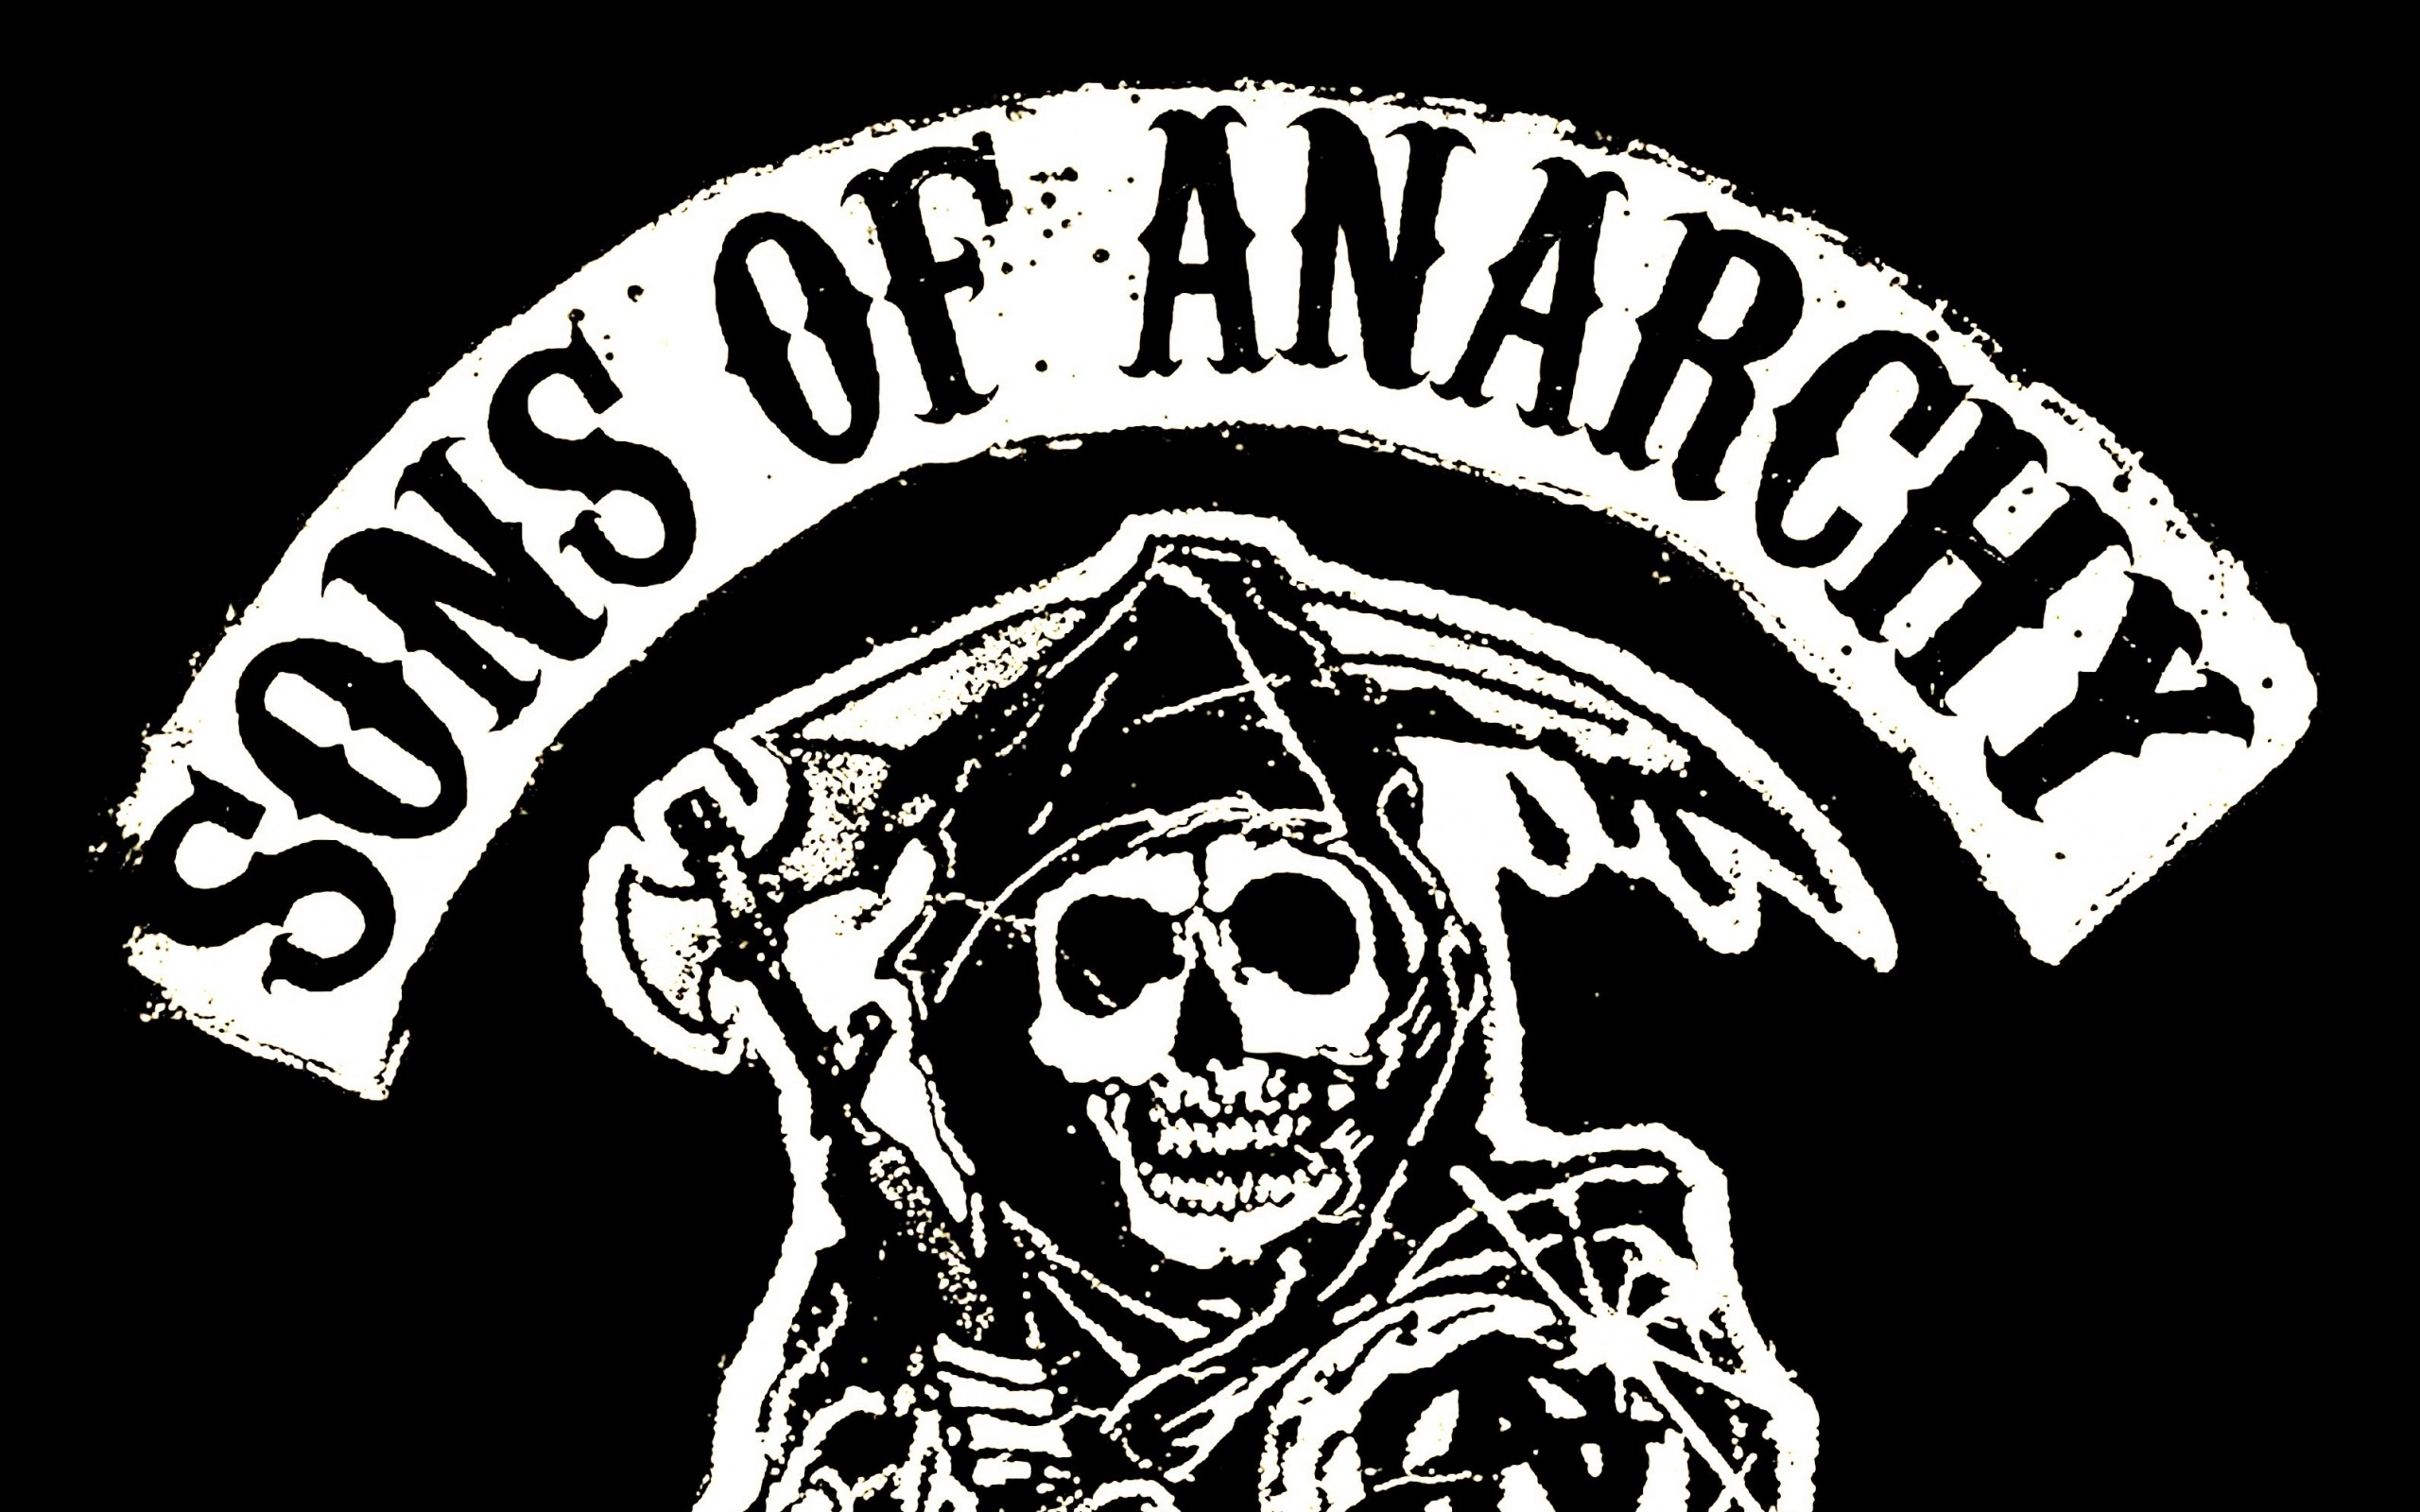 Old Iphone Wallpapers Sons Of Anarchy Wallpapers For Cell Phone 54 Images